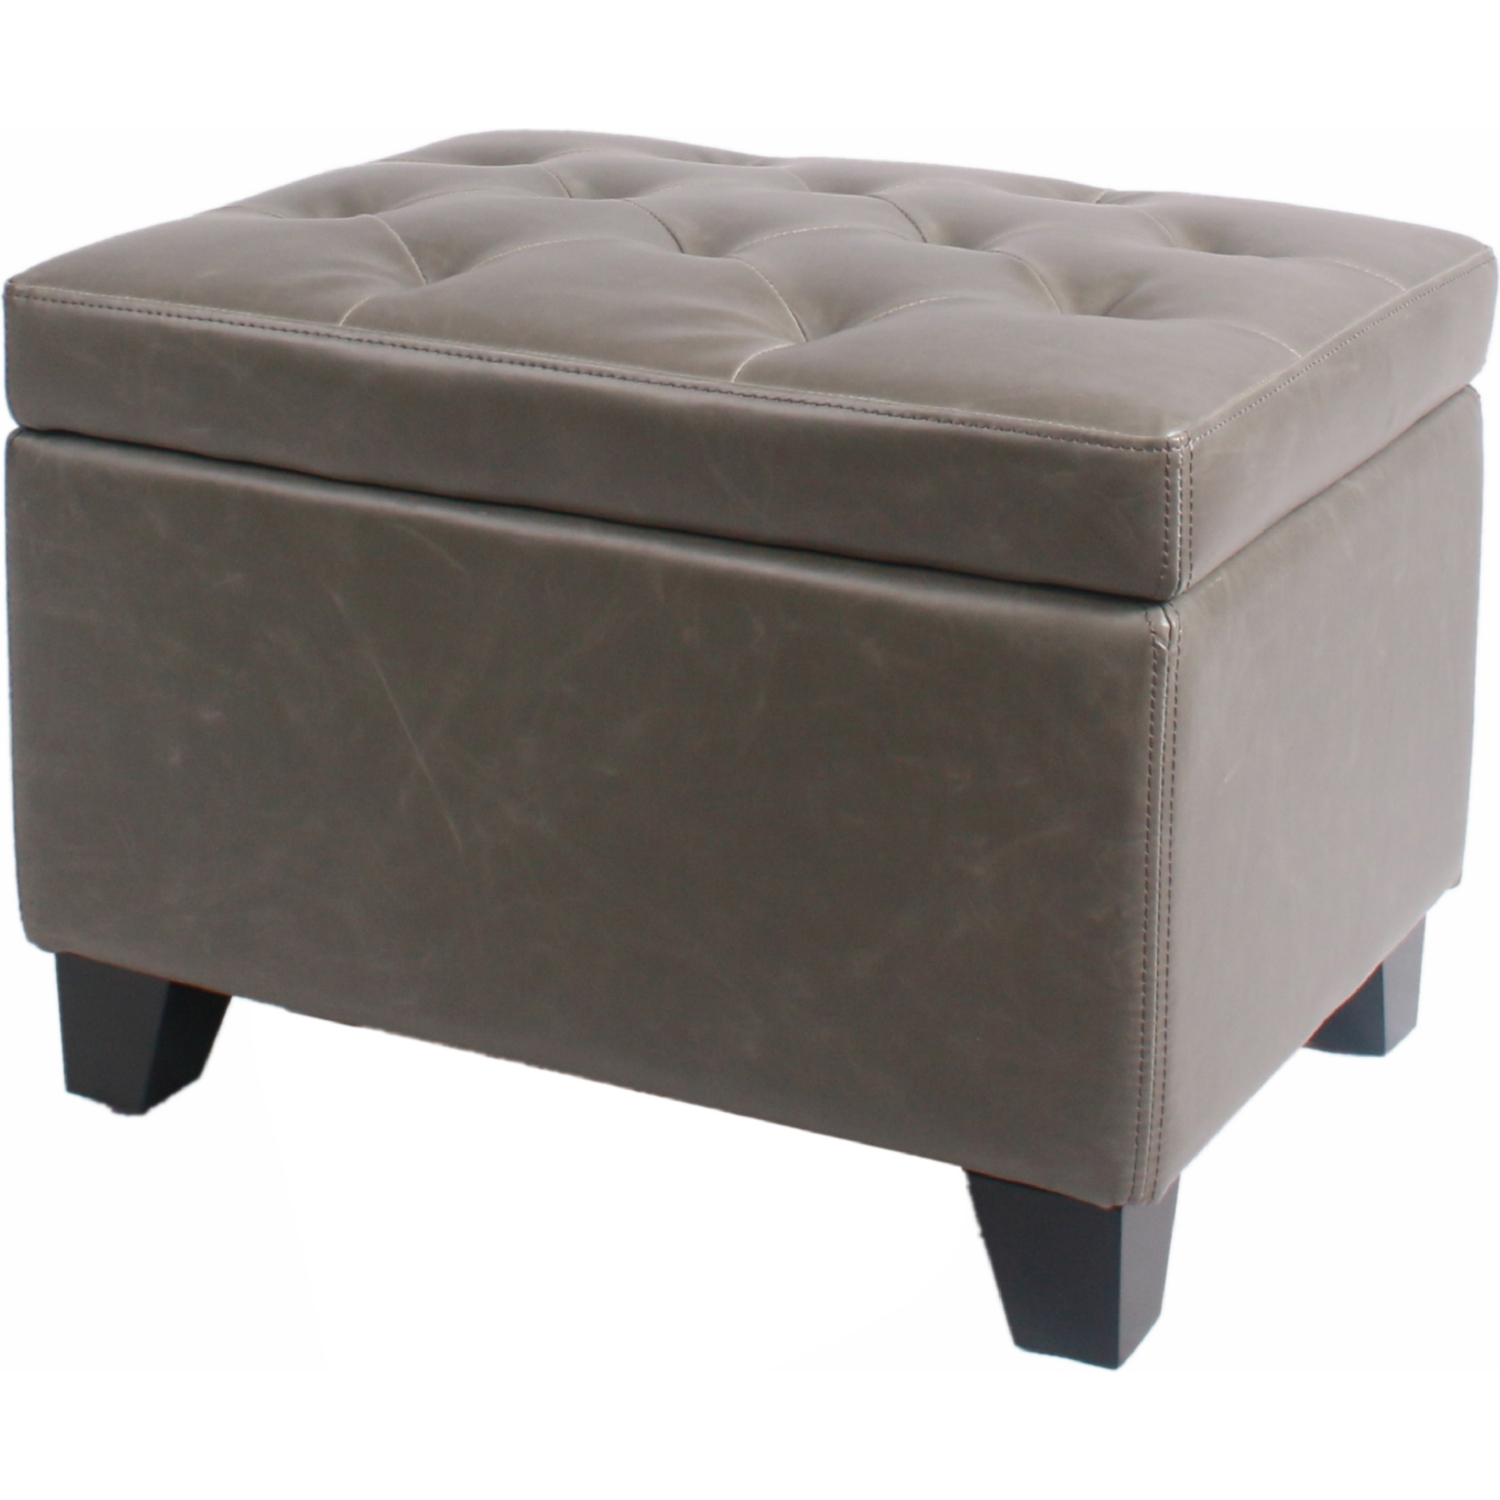 Tremendous Julian Rectangular Storage Ottoman In Vintage Gray Bonded Leather On Drift Wood Legs By New Pacific Direct Short Links Chair Design For Home Short Linksinfo